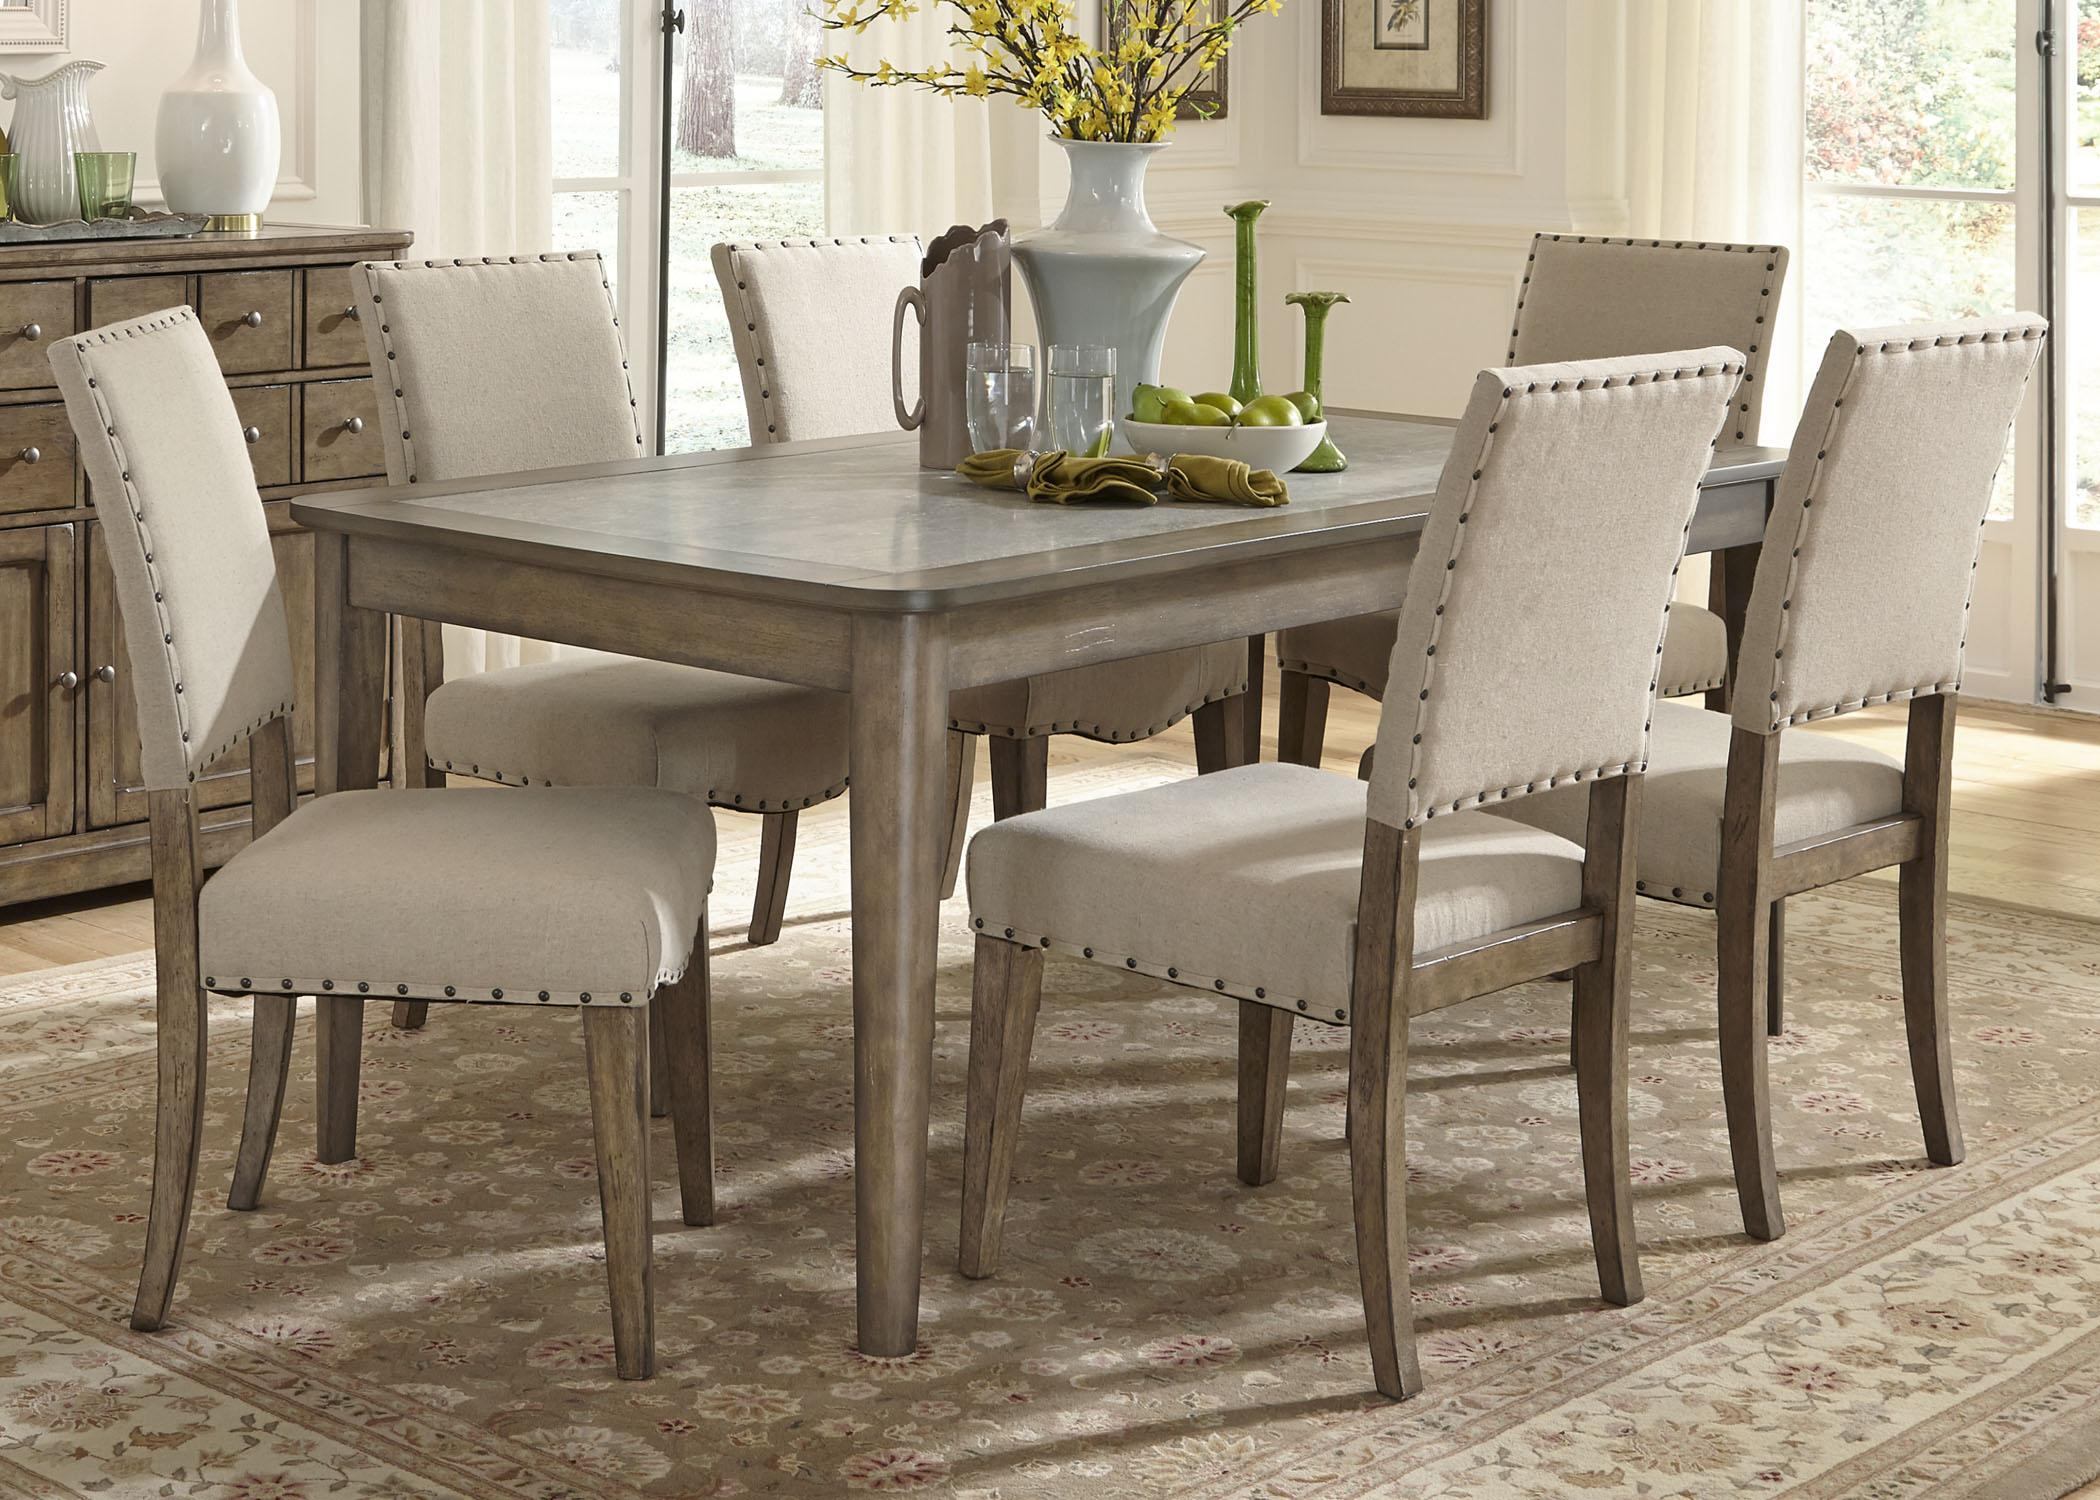 Casual Rustic 7 Piece Dining Table and Chairs Set : 7 piece dining table set - pezcame.com